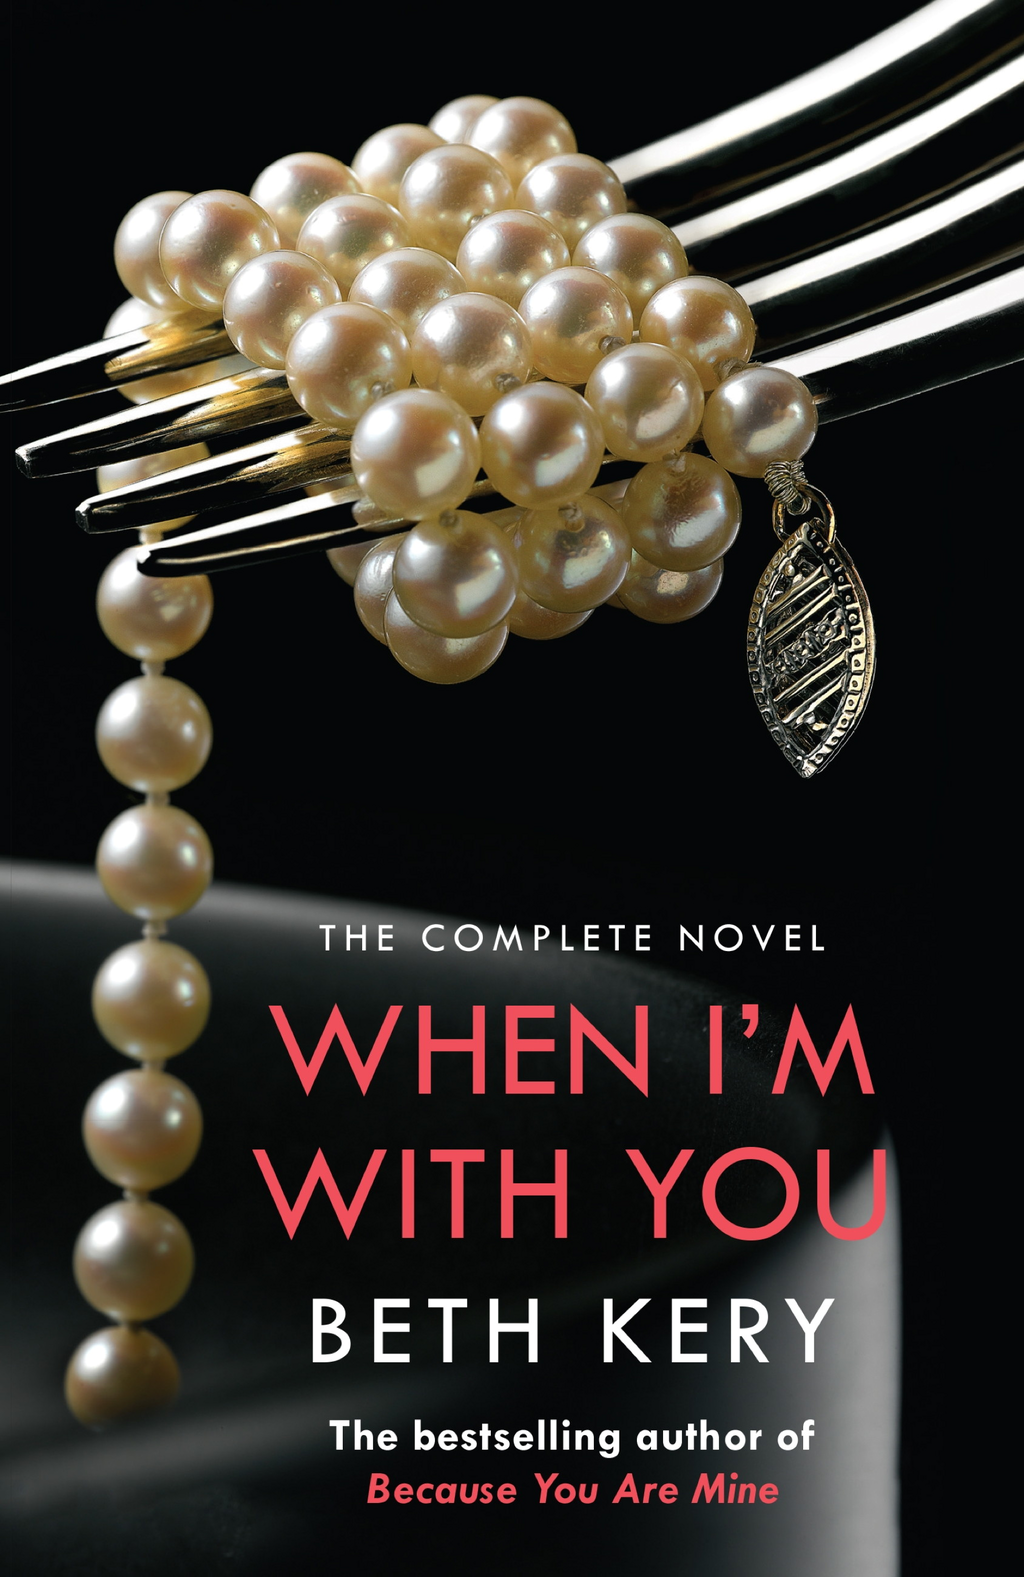 When I'm With You Complete Novel (Because You Are Mine Series #2) Because You Are Mine Series #2